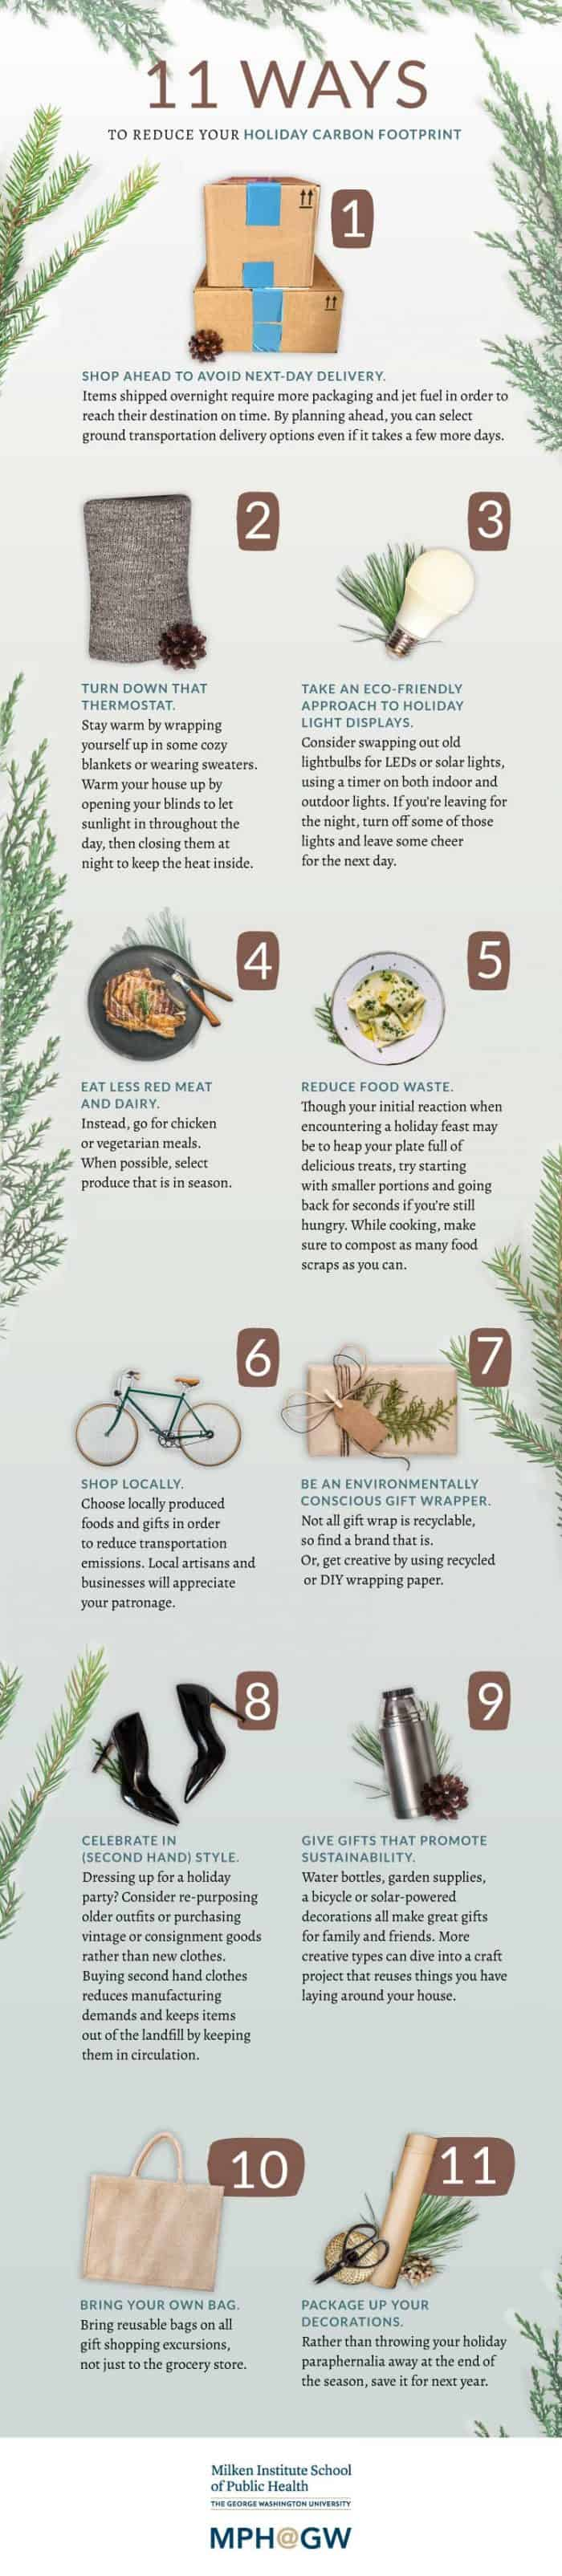 11-Ways-to-Reduce-your-Holiday-Carbon-Footprint